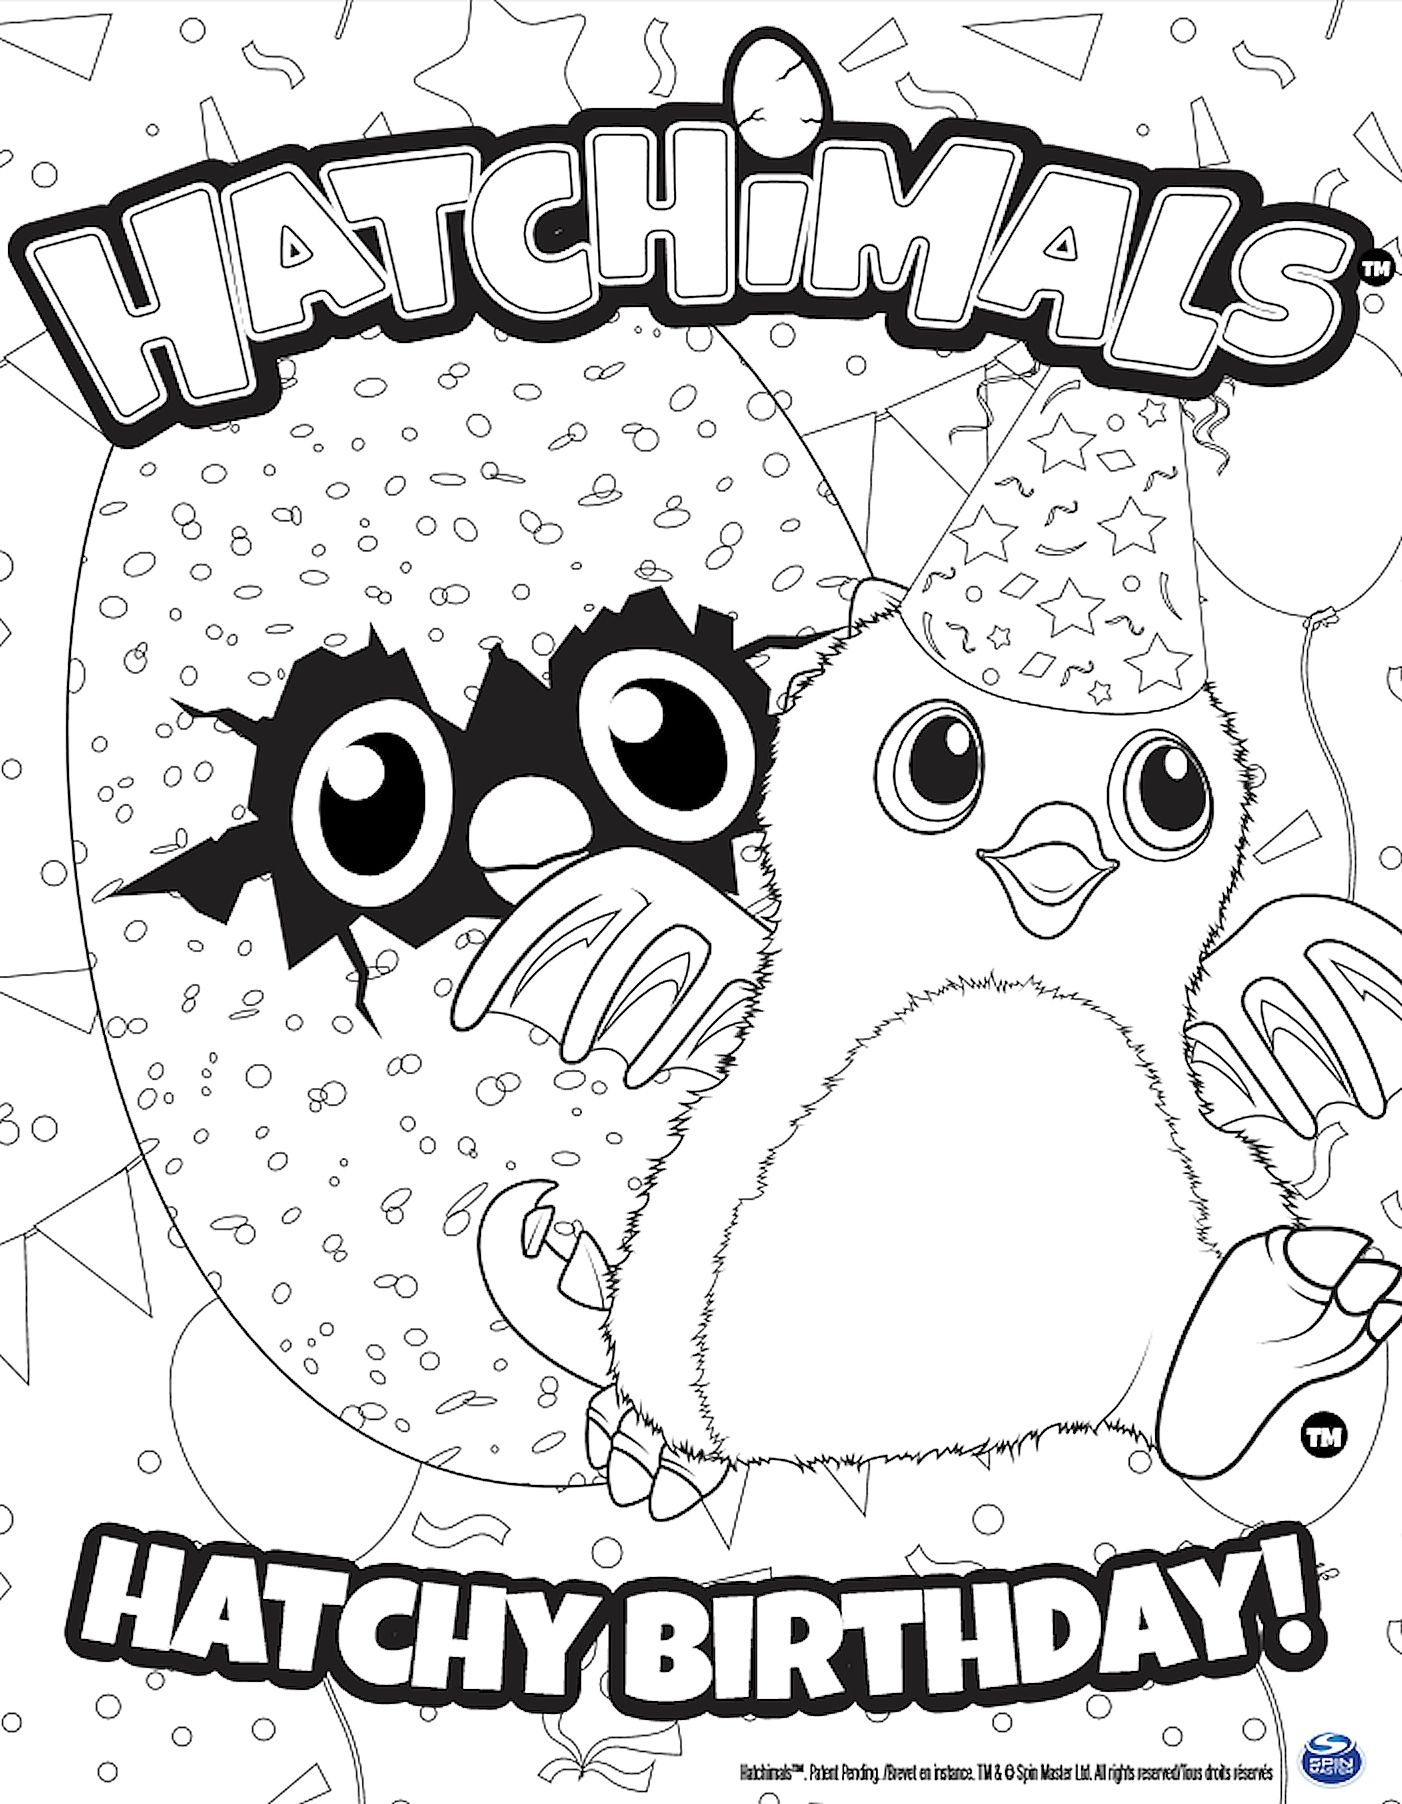 Hatchimals Hatchy Birthday Coloring Page Click The Picture To Go To The Coloring Video Birthday Coloring Pages Easter Coloring Pages Space Coloring Pages